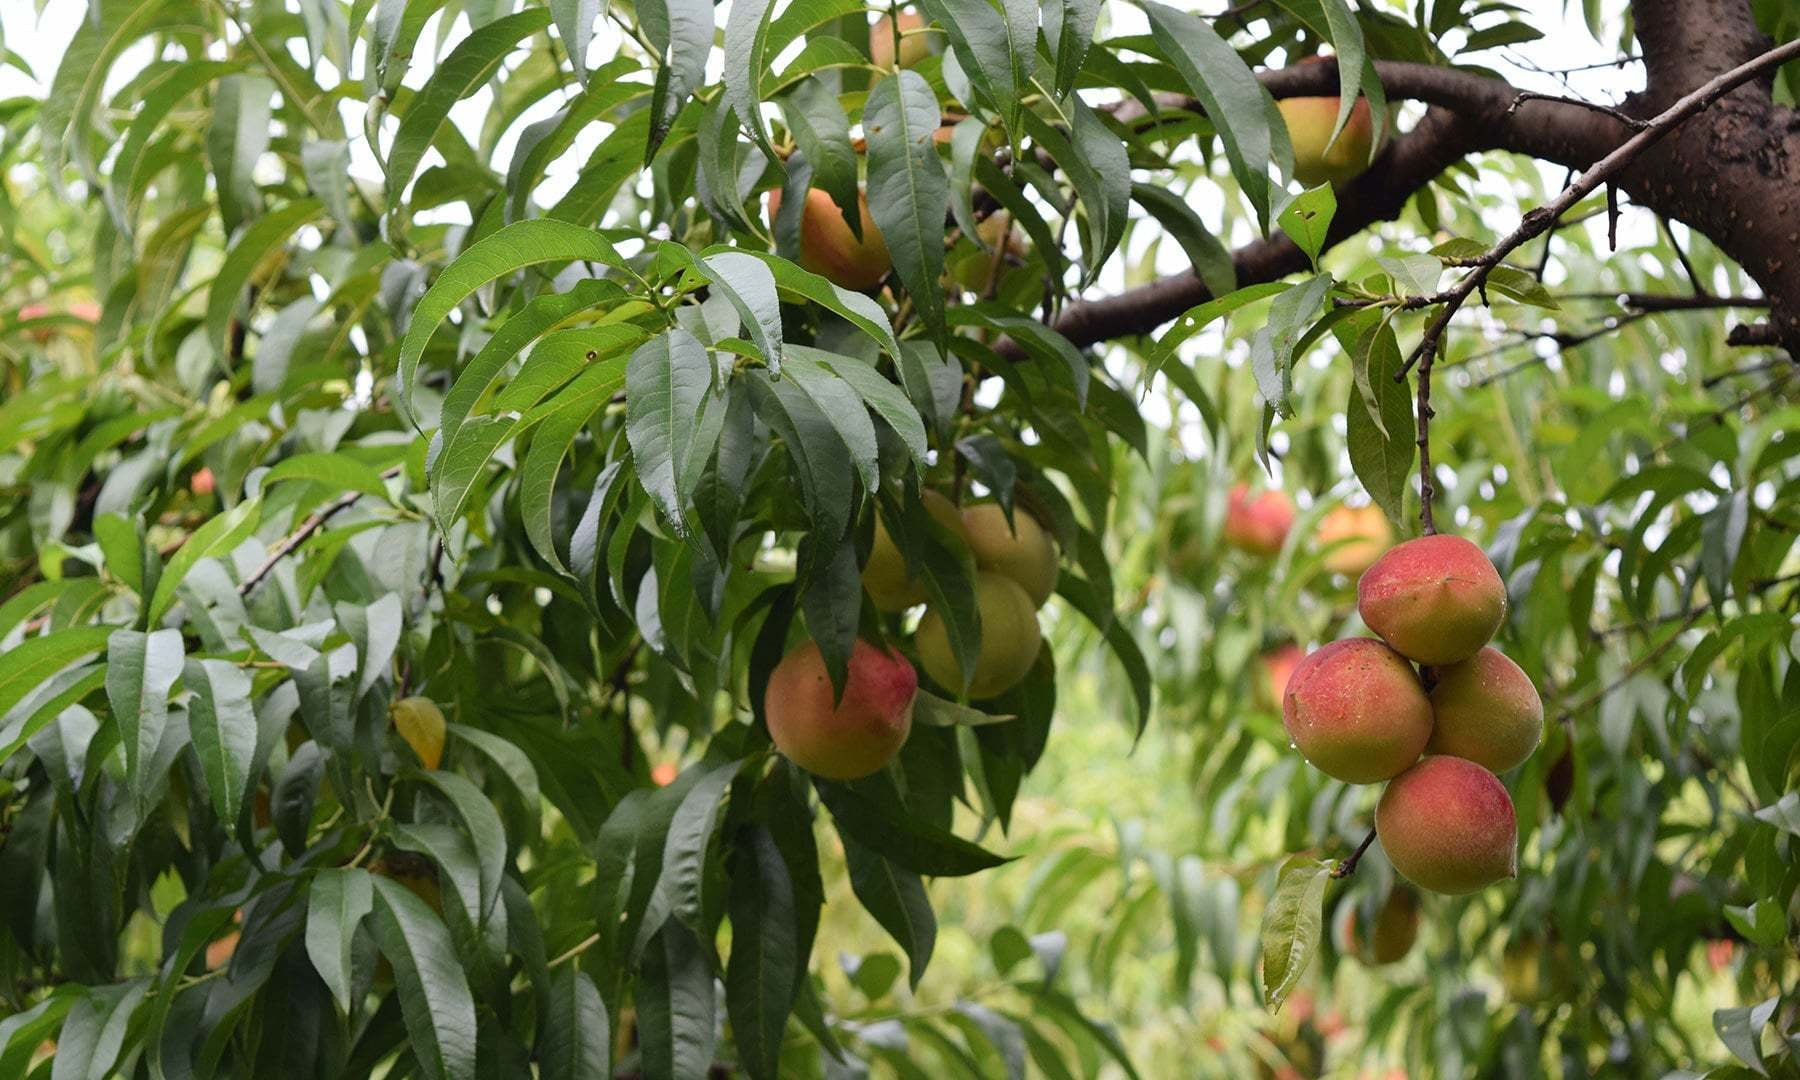 A 'large peach' tree.